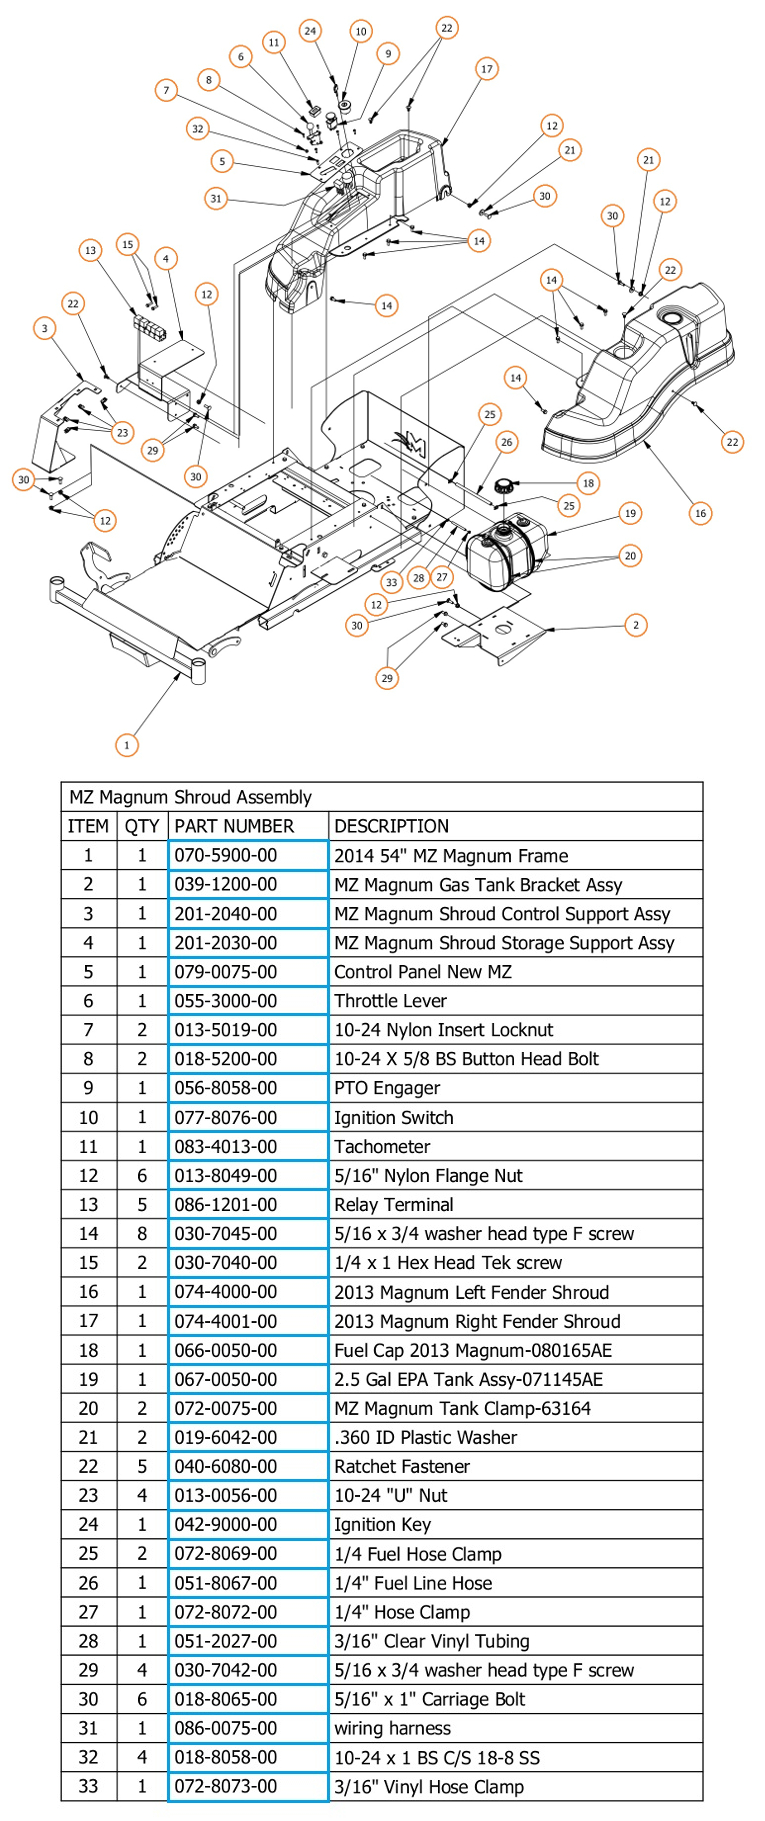 2016 MZ Magnum Fuel Tank Assembly 20170131141820 fuel tank assembly Wiring Harness Diagram at alyssarenee.co